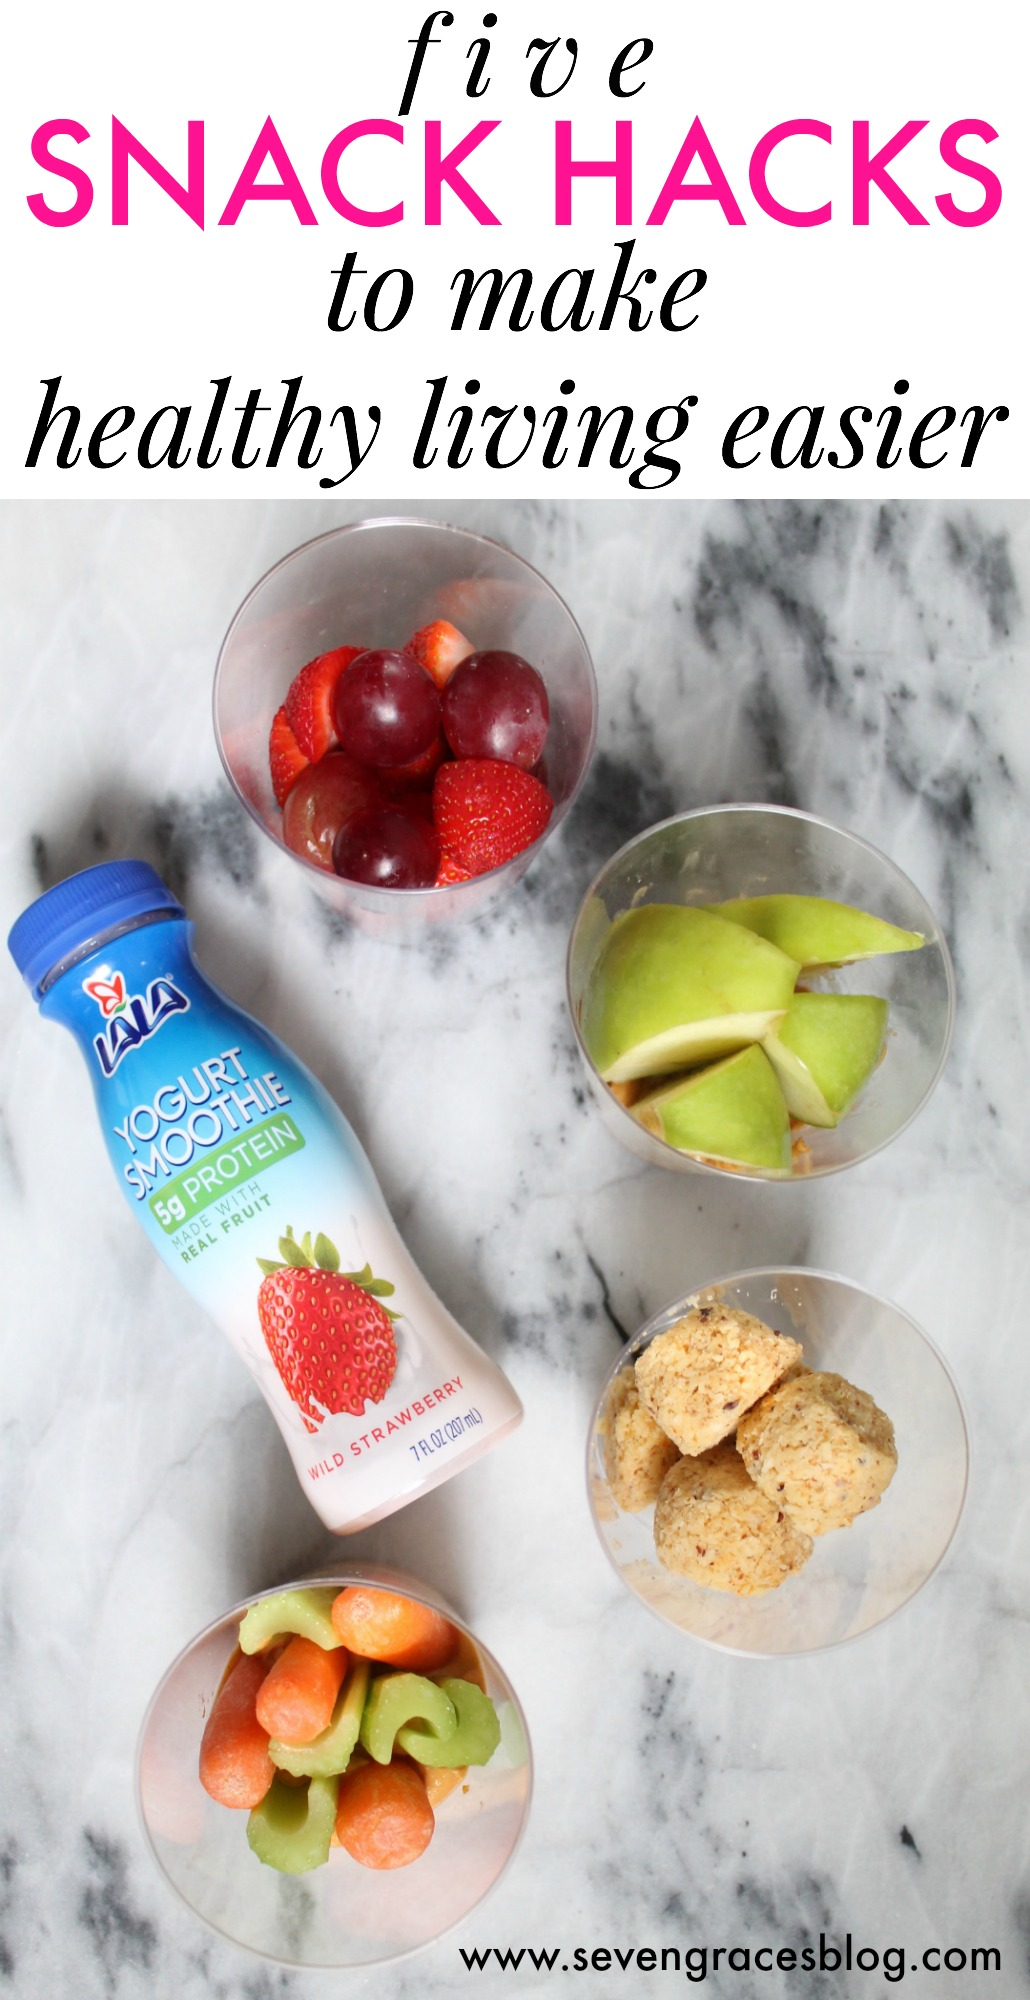 5 snack hacks to make healthy living easier: How to make Lala Yogurt Smoothies, fresh fruits, veggies, and more part of your smart snacking plan. #lalachallenge #ad